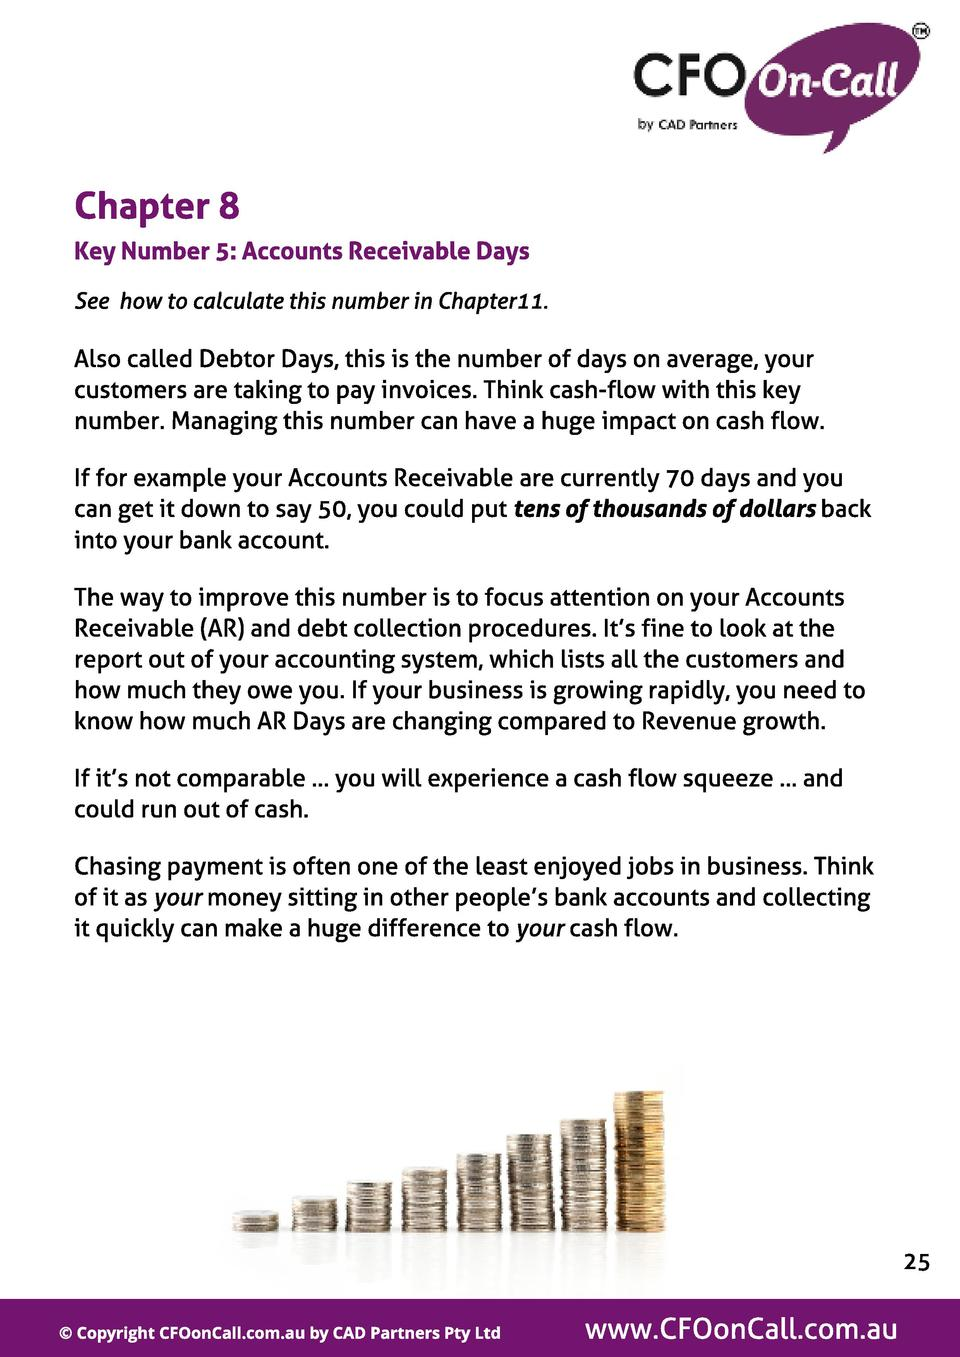 Chapt er 8 Key Number 5  Account s Receivabl e Days See how to calculate this number in Chapter11.  Also called Debtor Day...